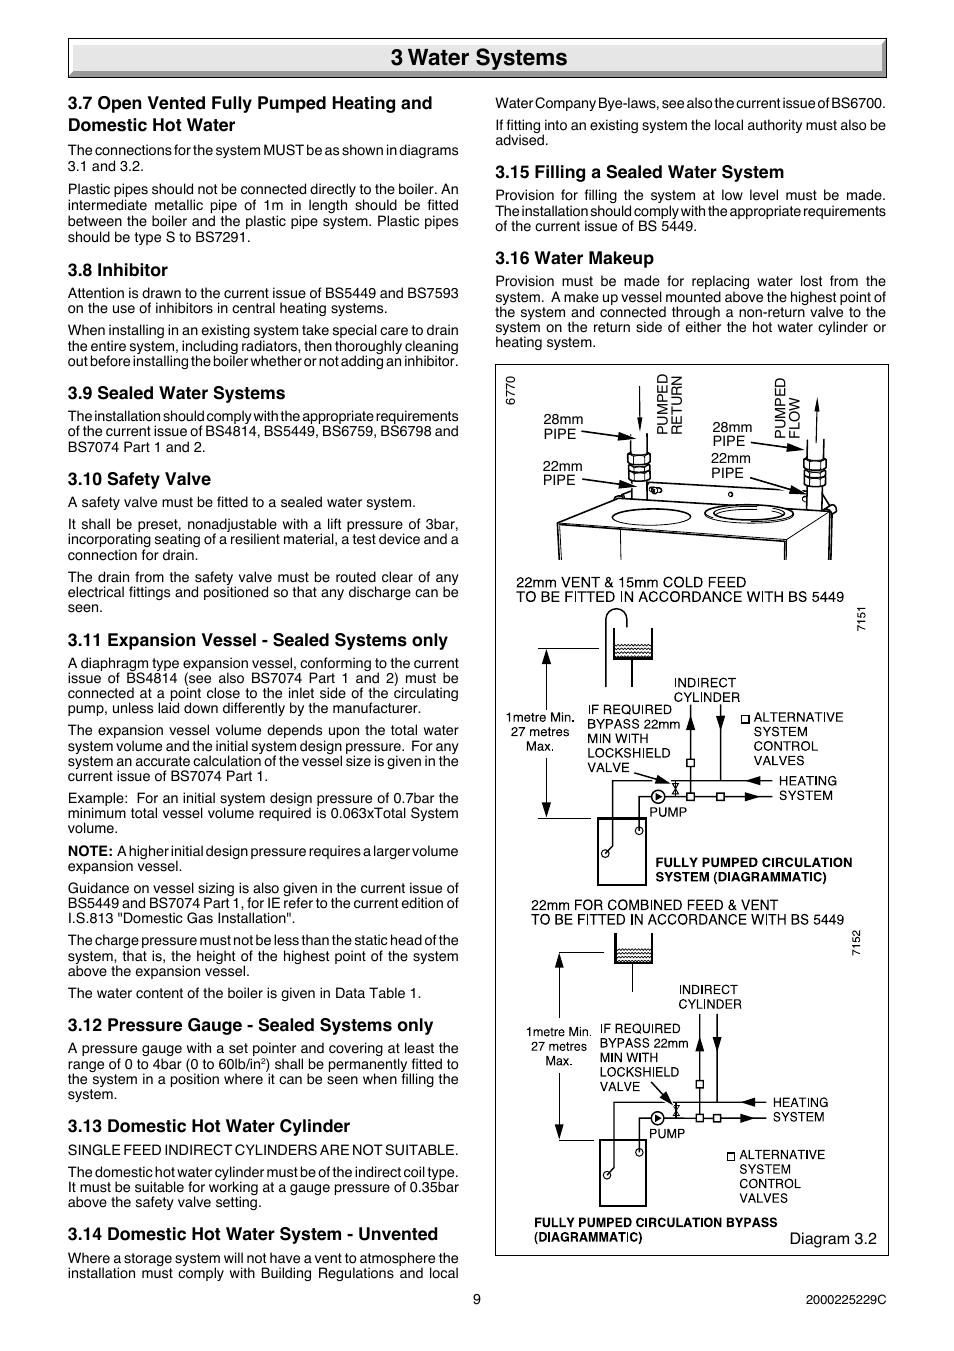 Colorful Glow Worm Manuals Crest - Wiring Diagram Ideas - guapodugh.com